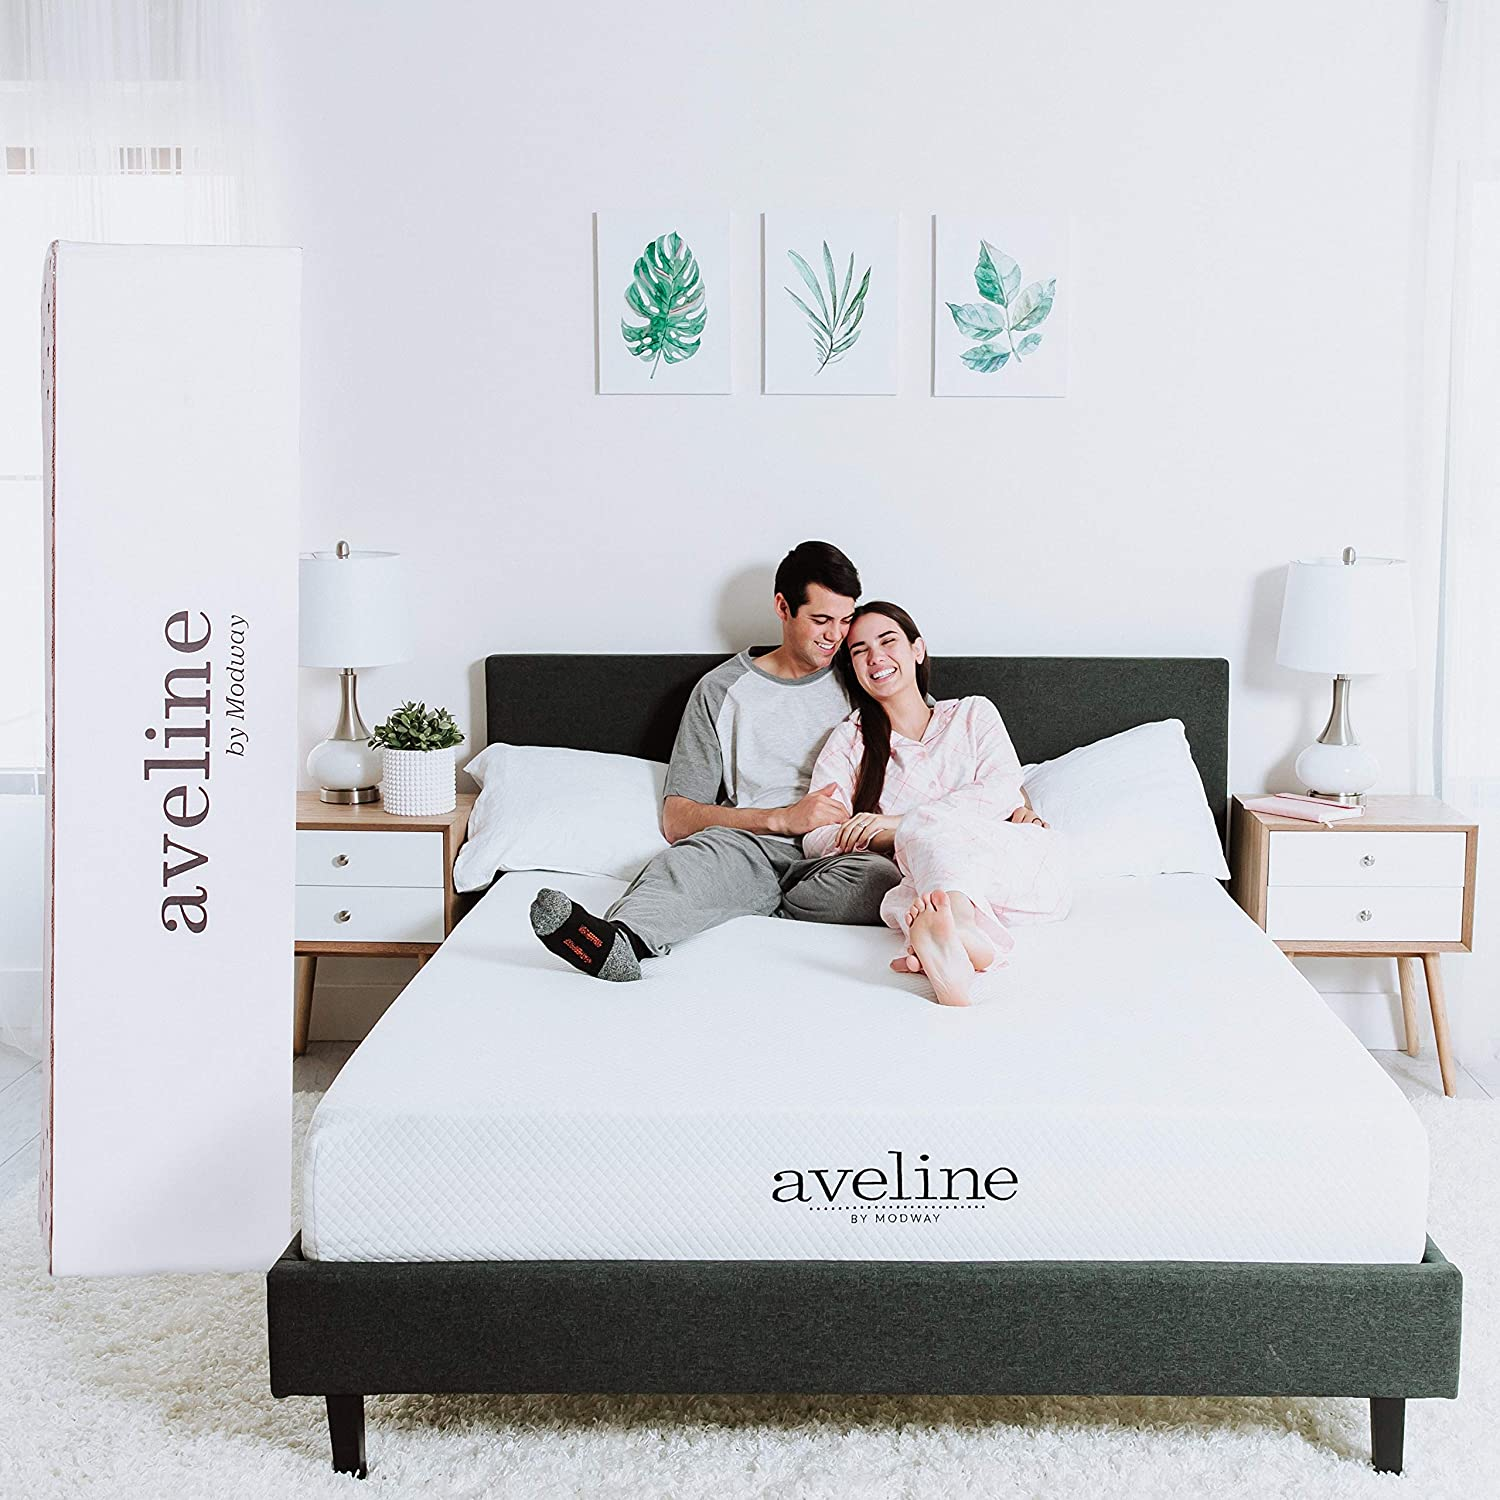 "Modway Aveline 8"" Gel Infused Memory Foam Queen Mattress With CertiPUR-US Certified Foam - 10-Year Warranty - Available In Multiple Sizes"